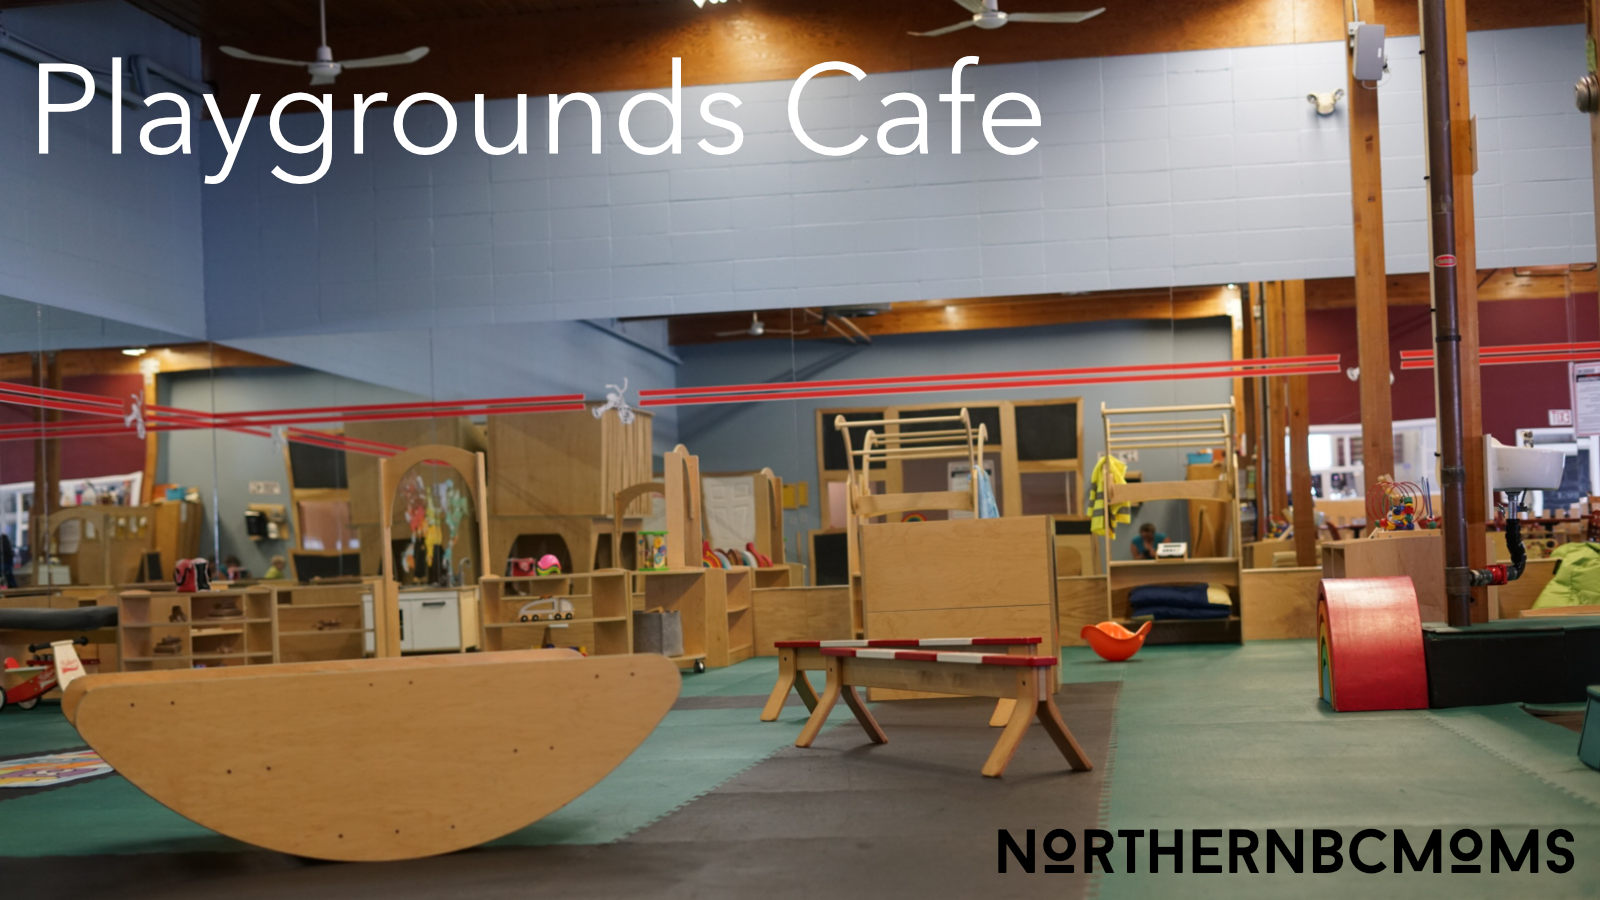 Playgrounds Cafe, Prince George BC Indoor Play Space for Children